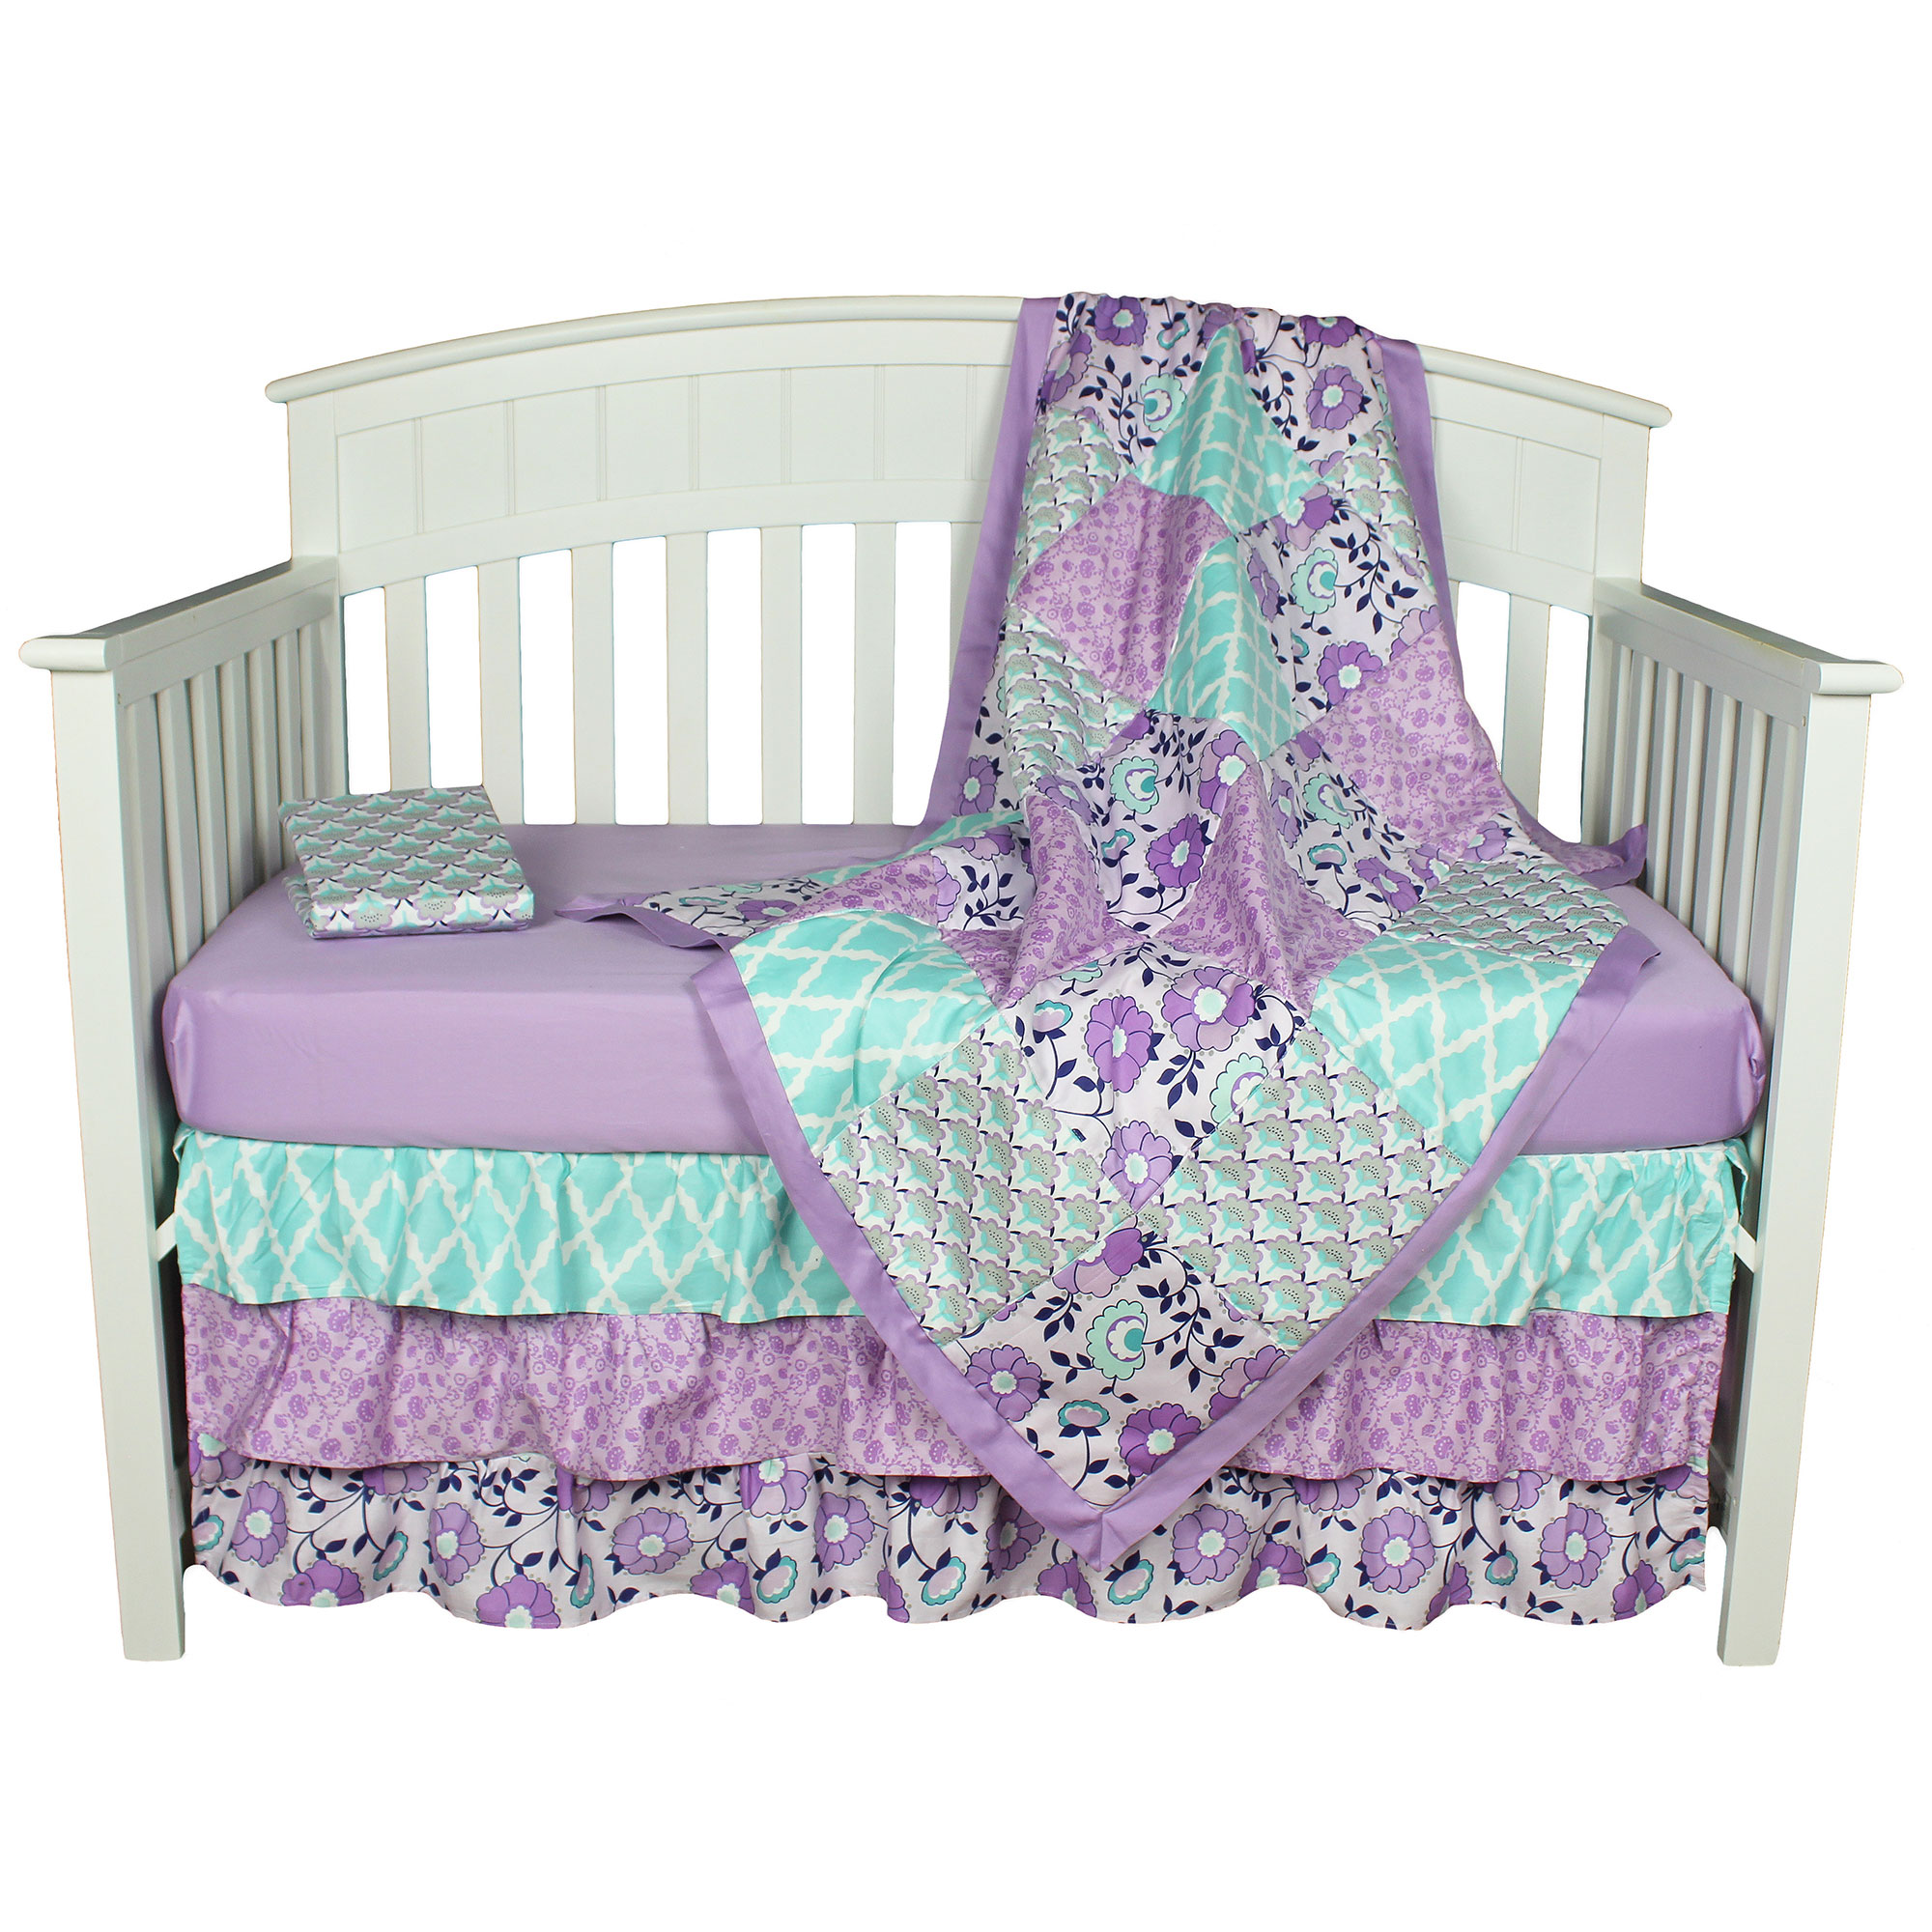 bed pinterest girl best braelyn bedding girls modpeapod setsbaby on sets images cots for baby